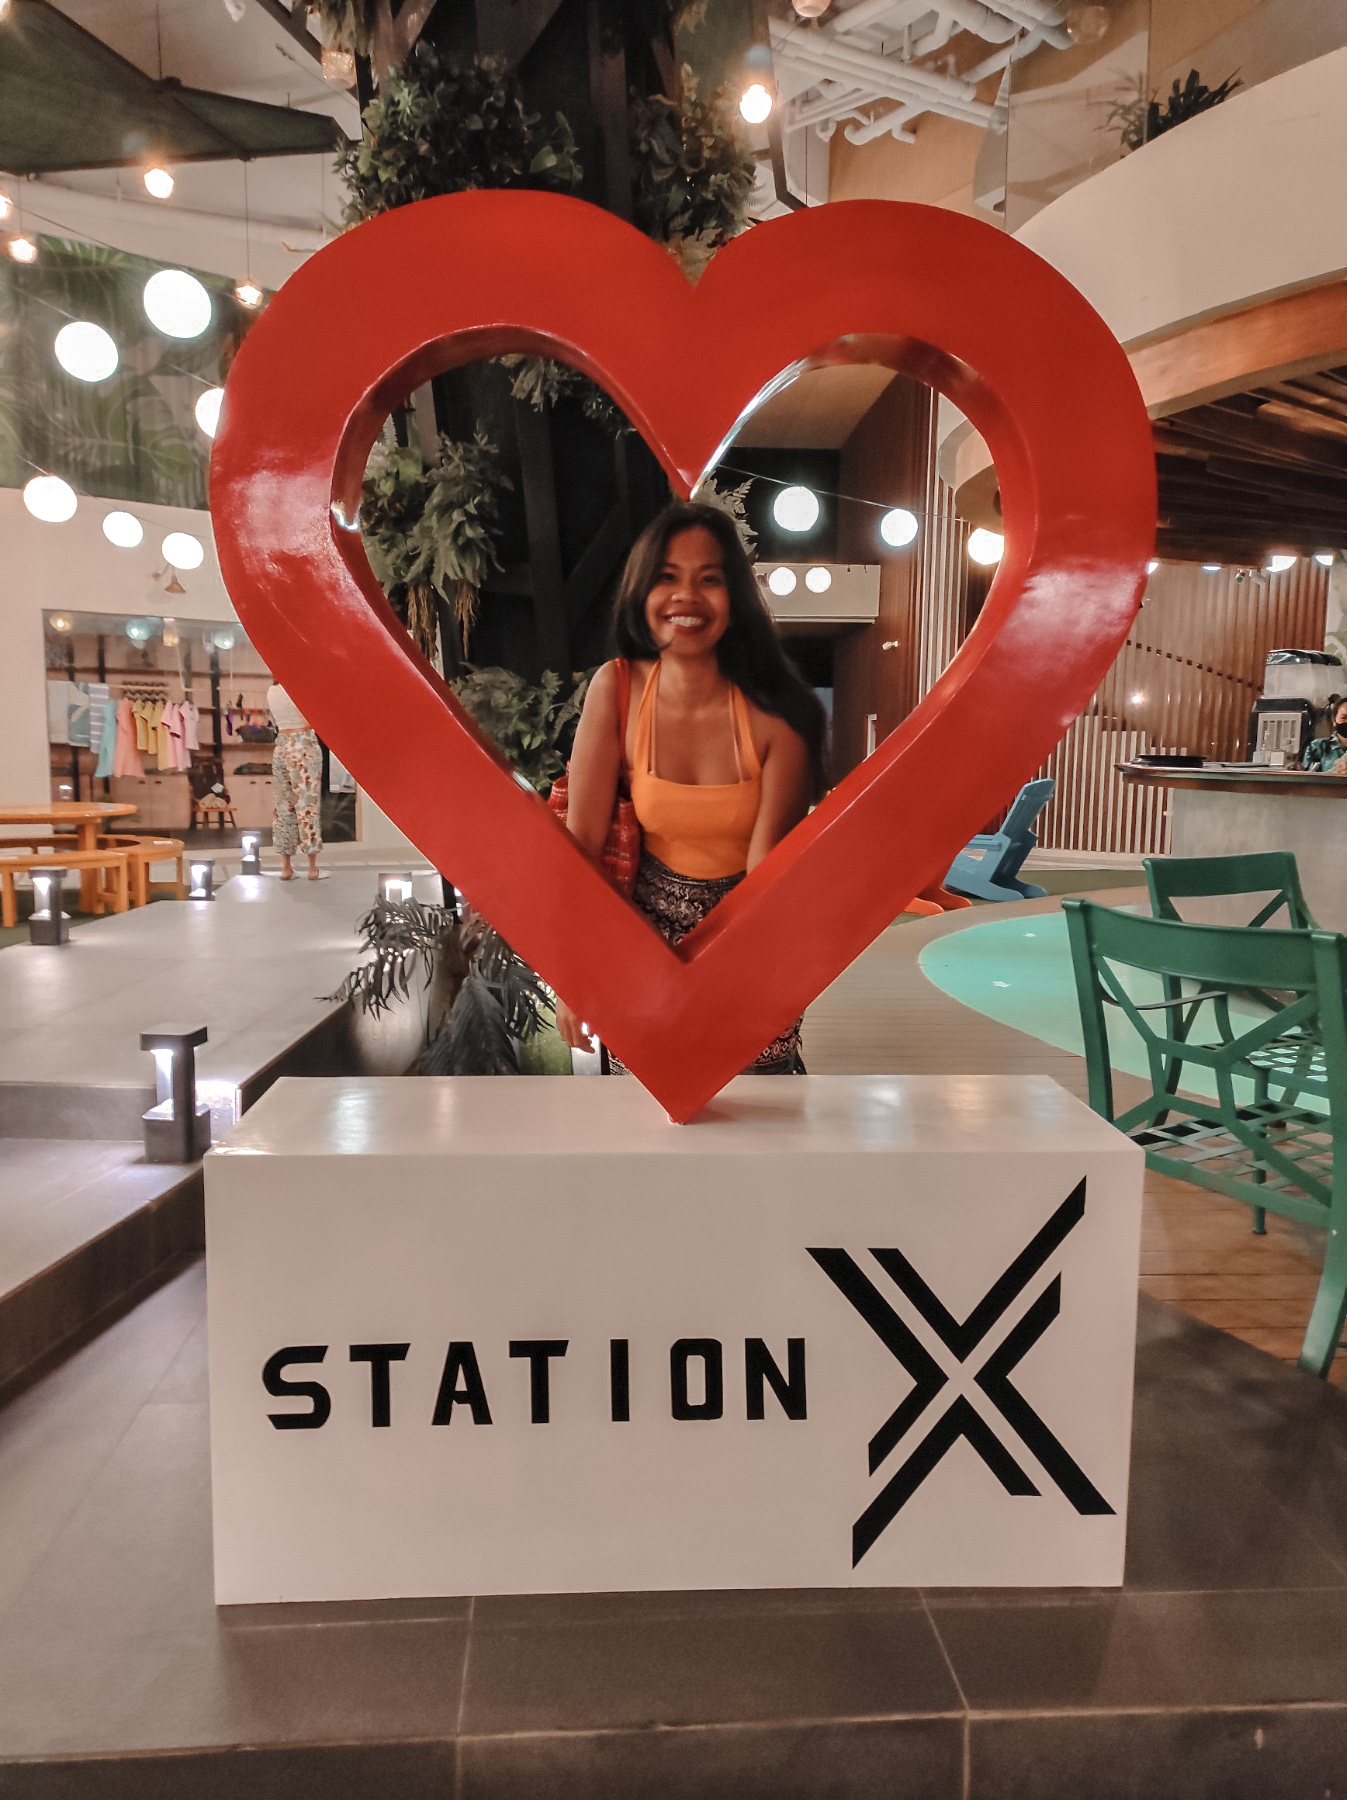 Station X Dip and Dine Experience [2021.02.21]